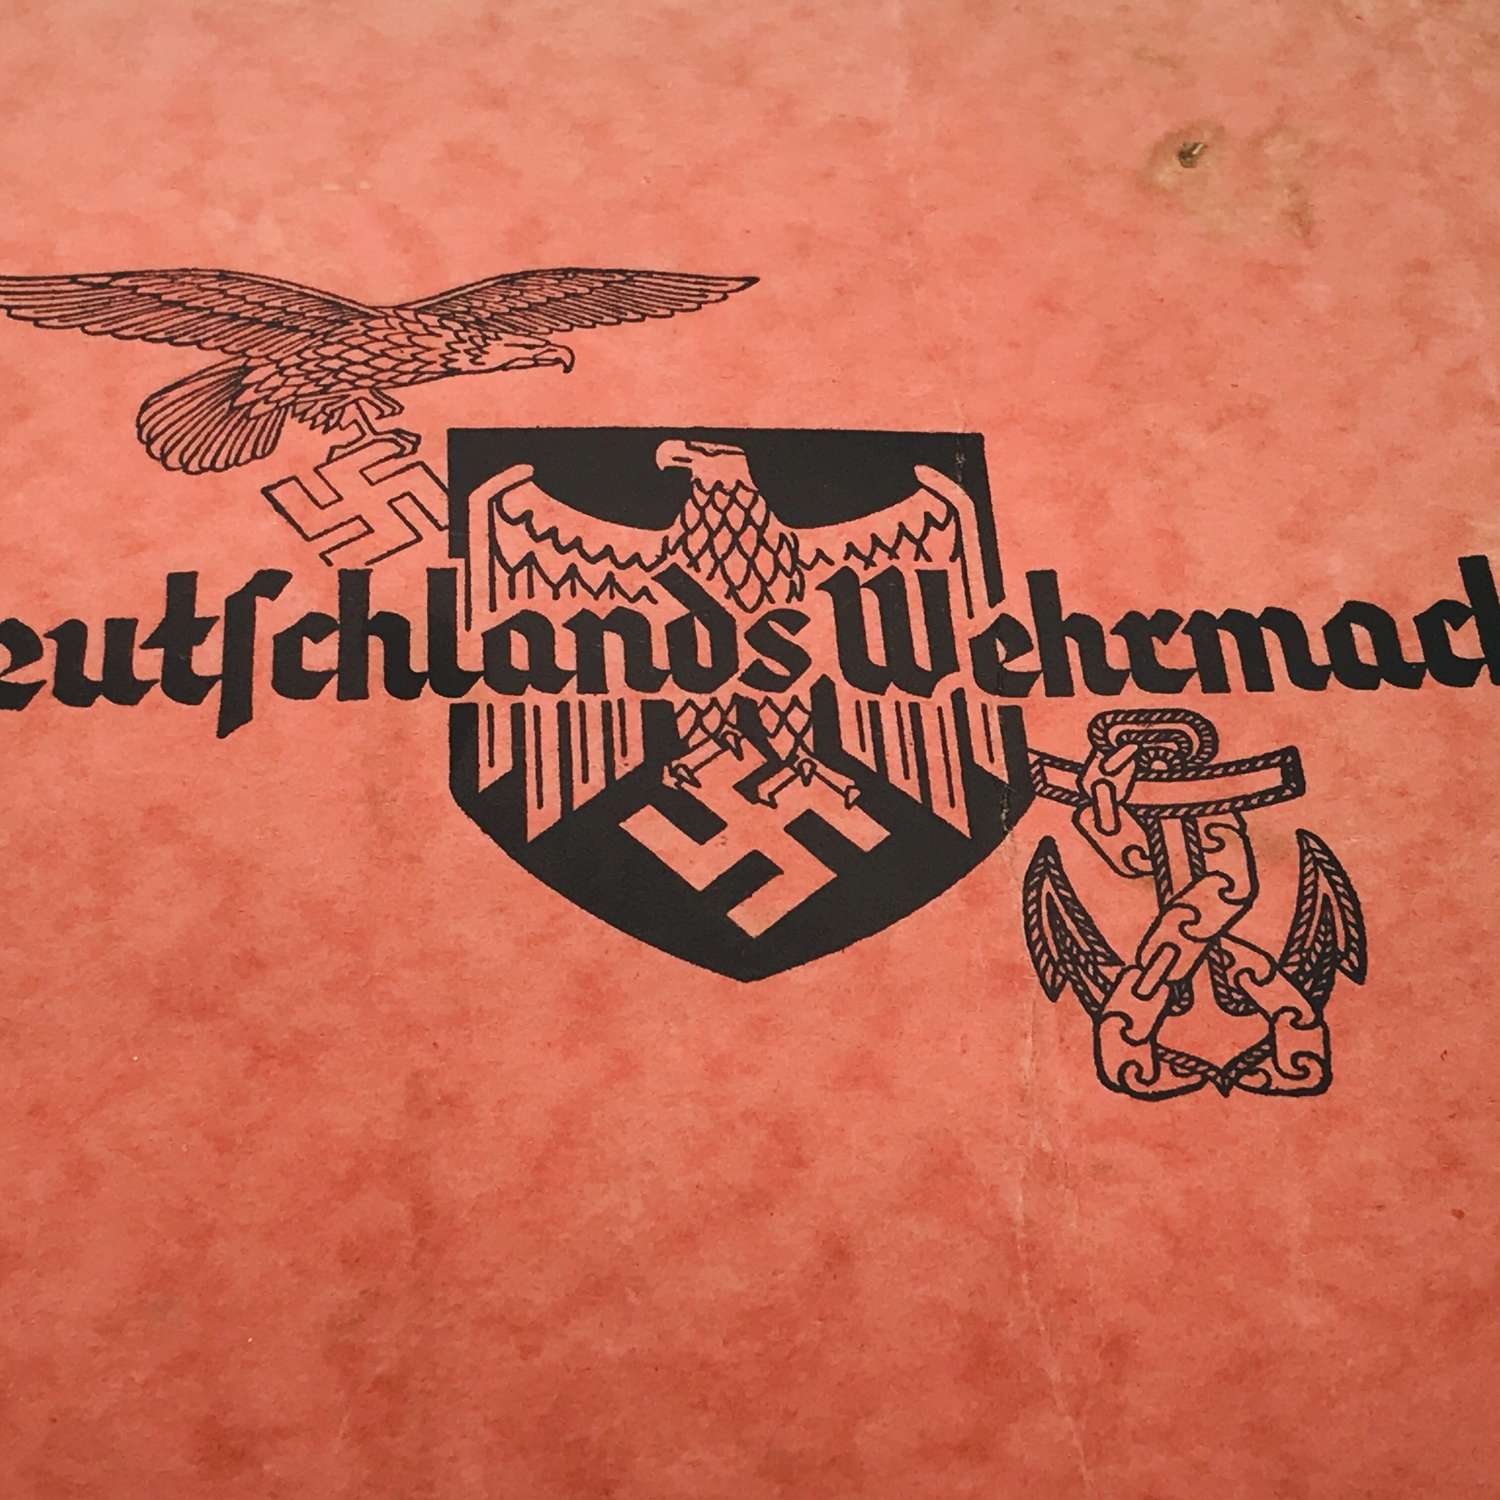 1938 publication on the German Armed Forces